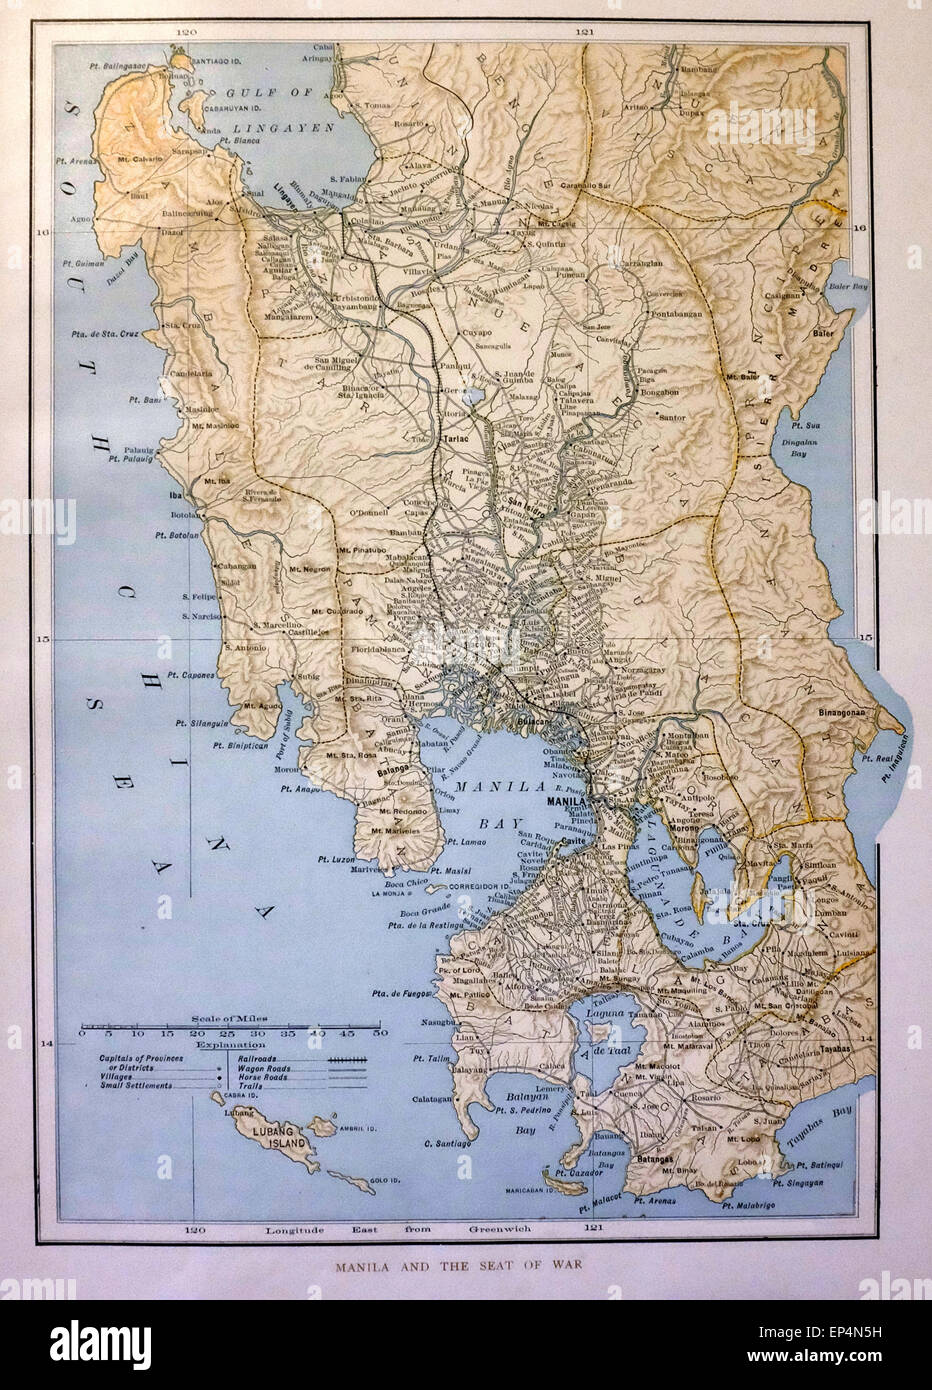 Map of Manila, Philippines and the Seat of War - 1898-1900 - Stock Image